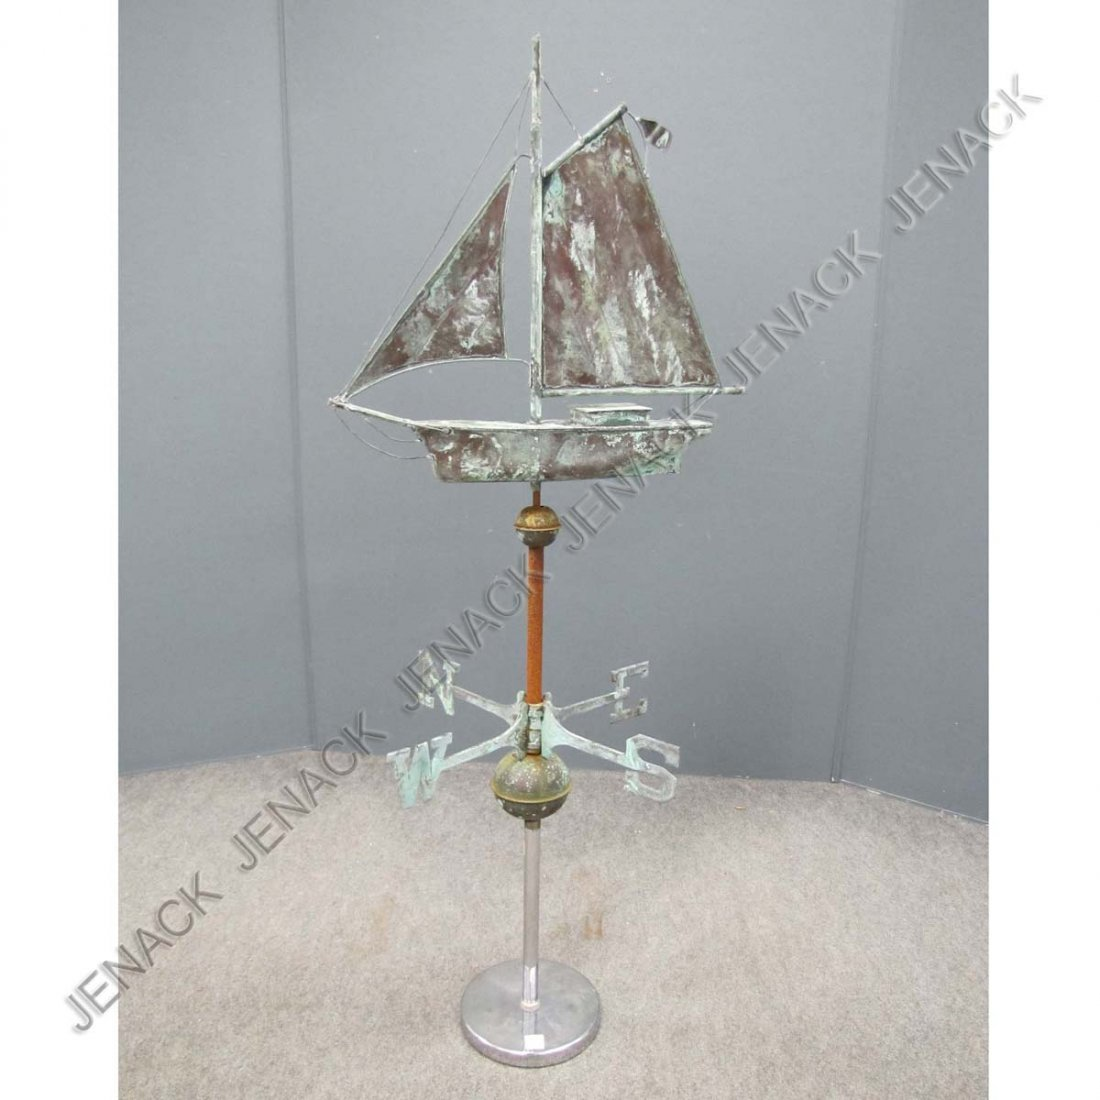 15: COPPER SAILBOAT WEATHERVANE WITH DIRECTIONALS